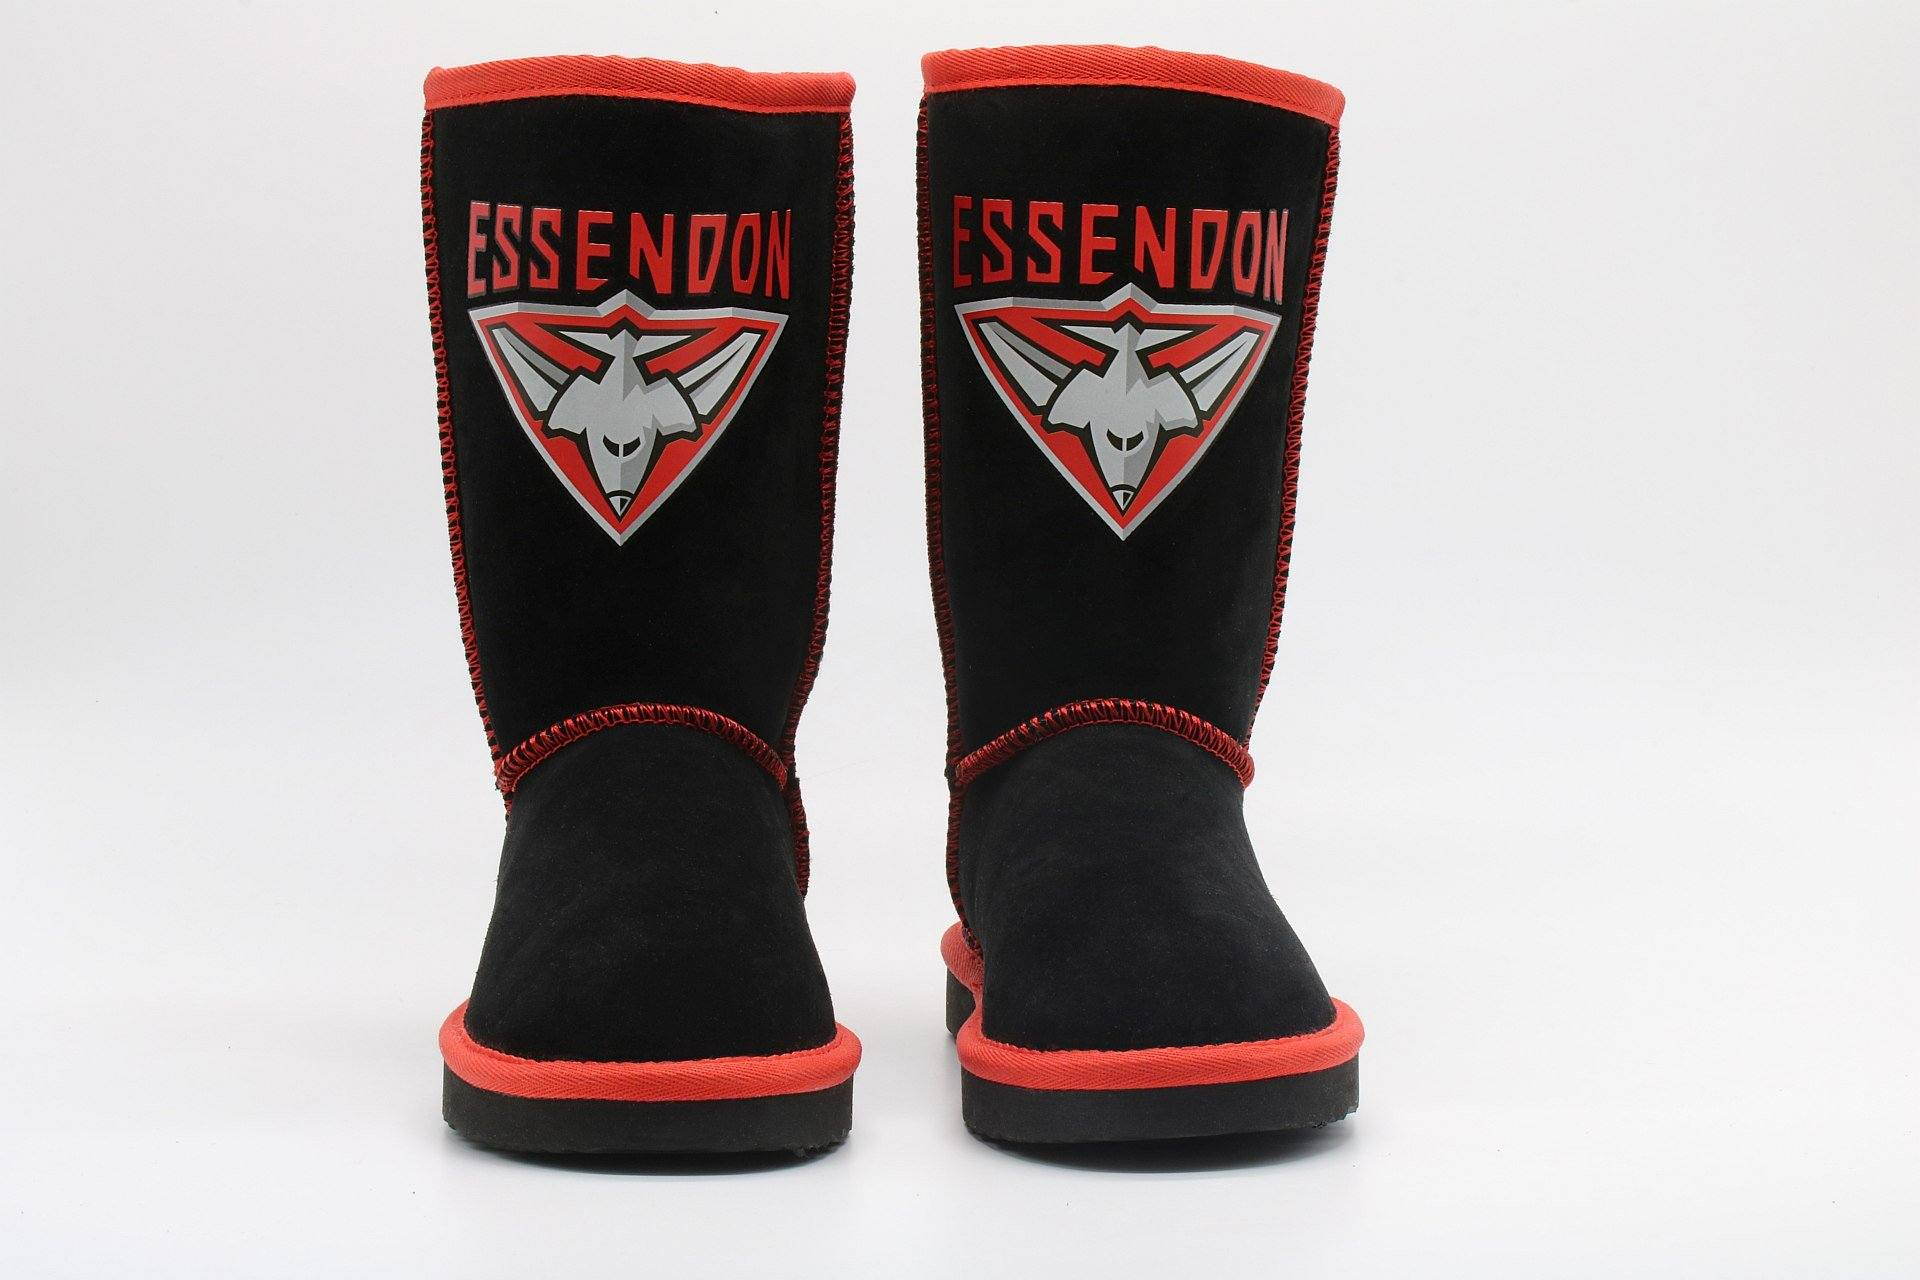 AFL Adult Ugg Boots - Essendon Bombers Footwear Team Uggs